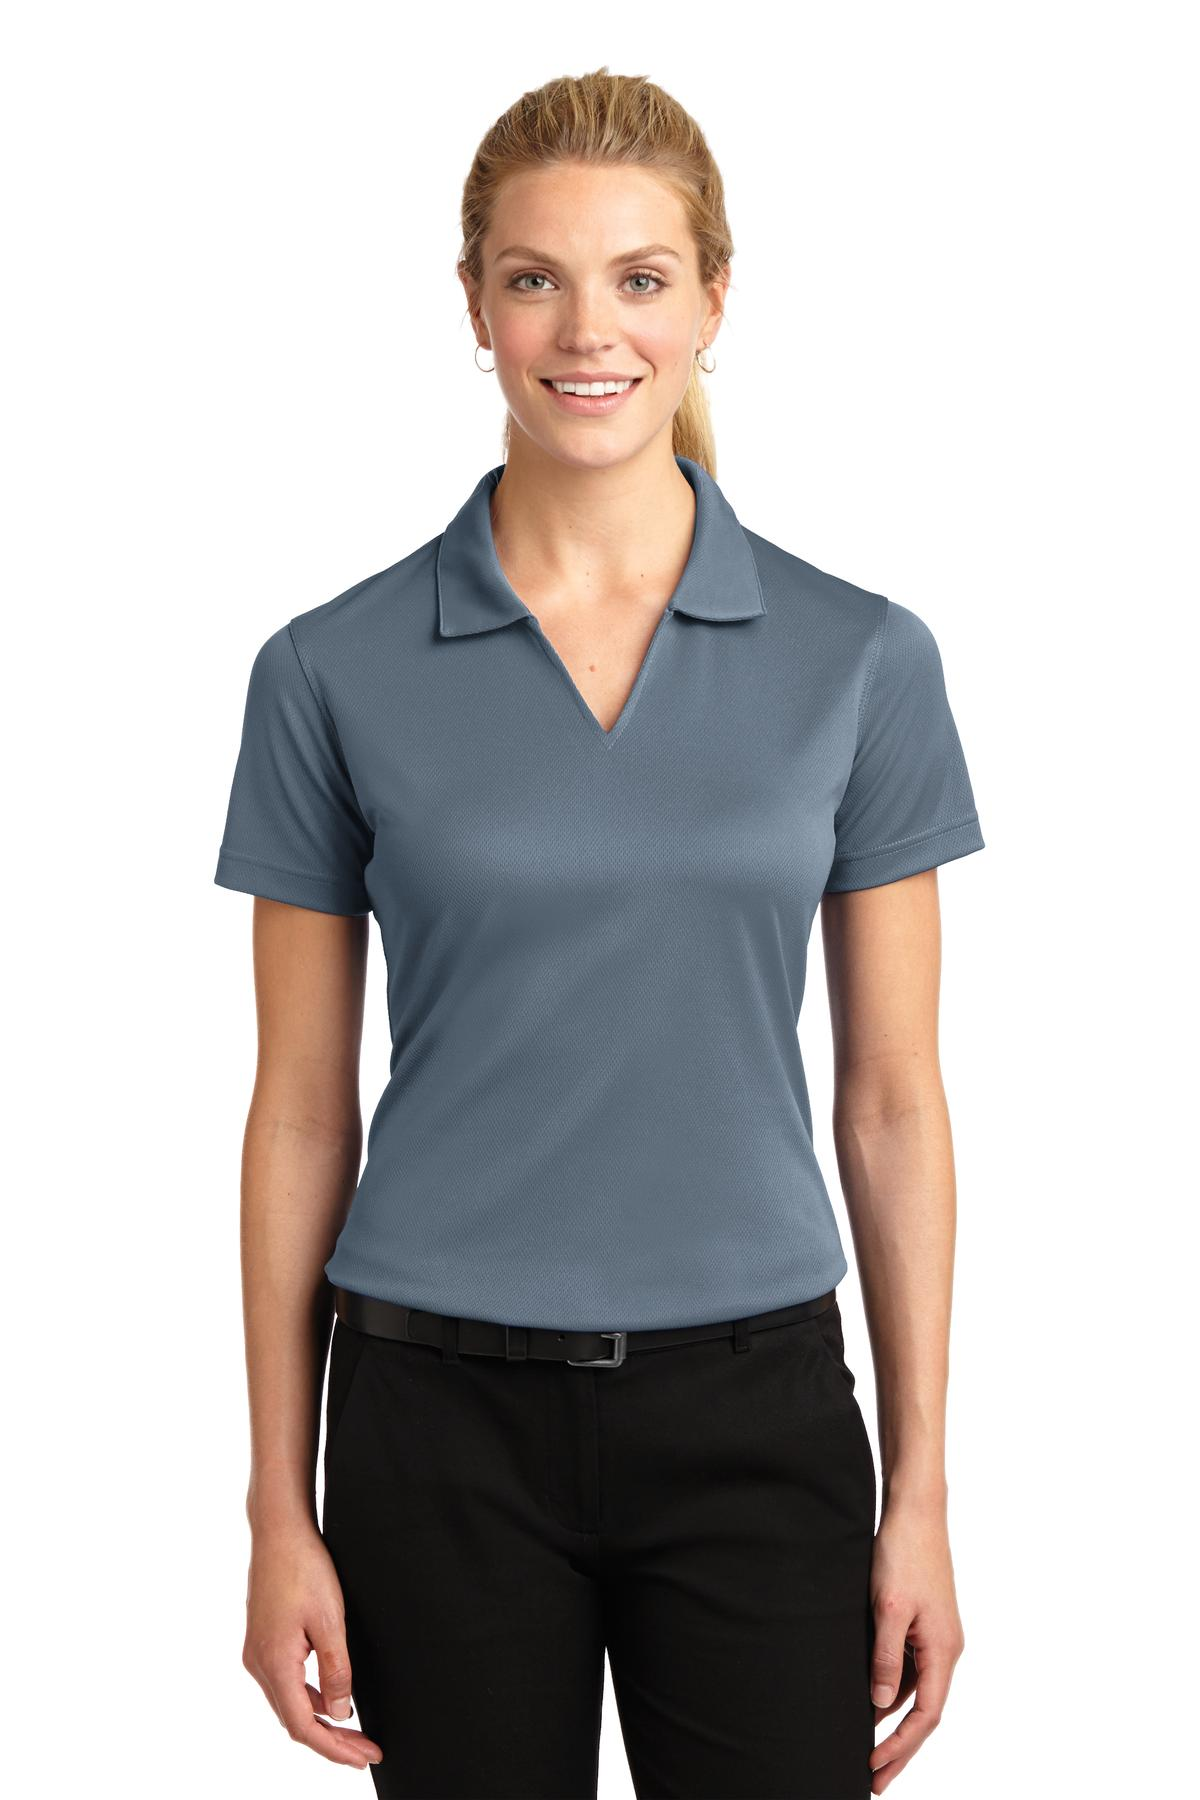 Sport-Tek ®  Ladies Dri-Mesh ®  V-Neck Polo.  L469 - Steel